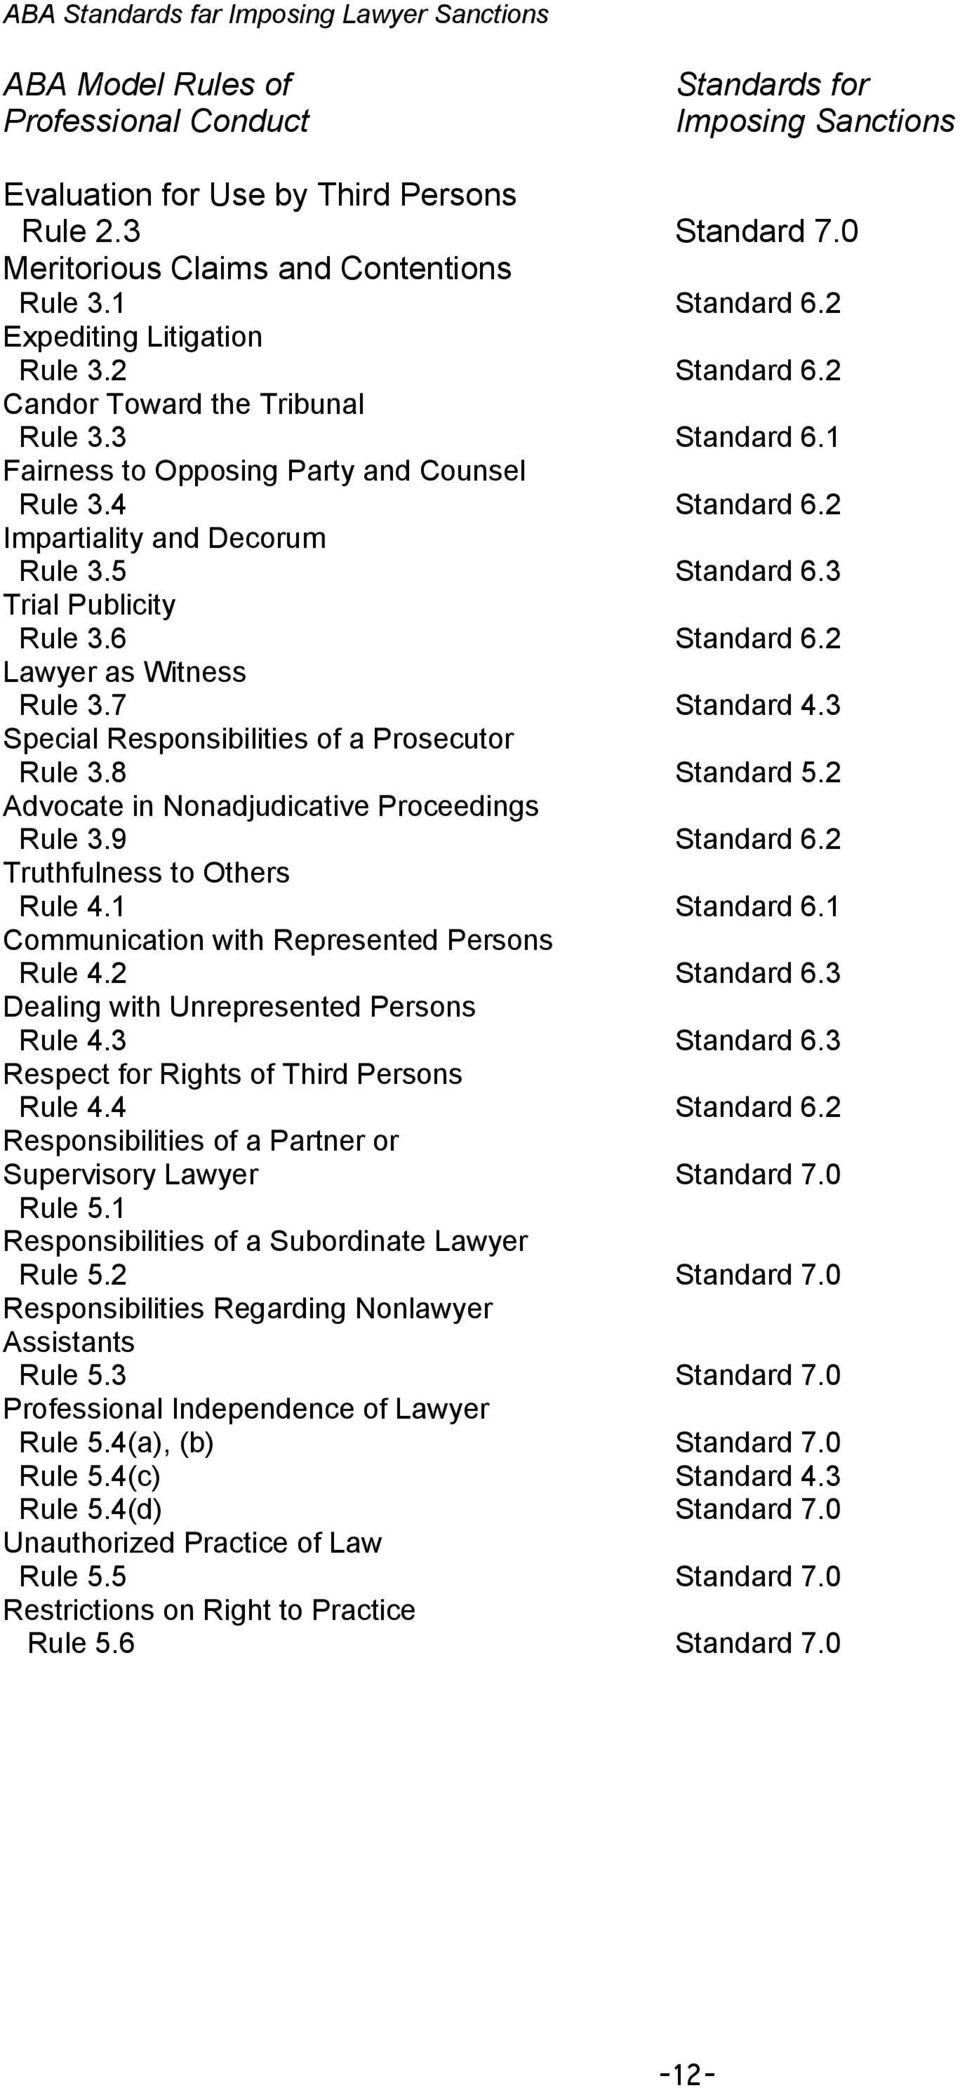 4 Standard 6.2 Impartiality and Decorum Rule 3.5 Standard 6.3 Trial Publicity Rule 3.6 Standard 6.2 Lawyer as Witness Rule 3.7 Standard 4.3 Special Responsibilities of a Prosecutor Rule 3.